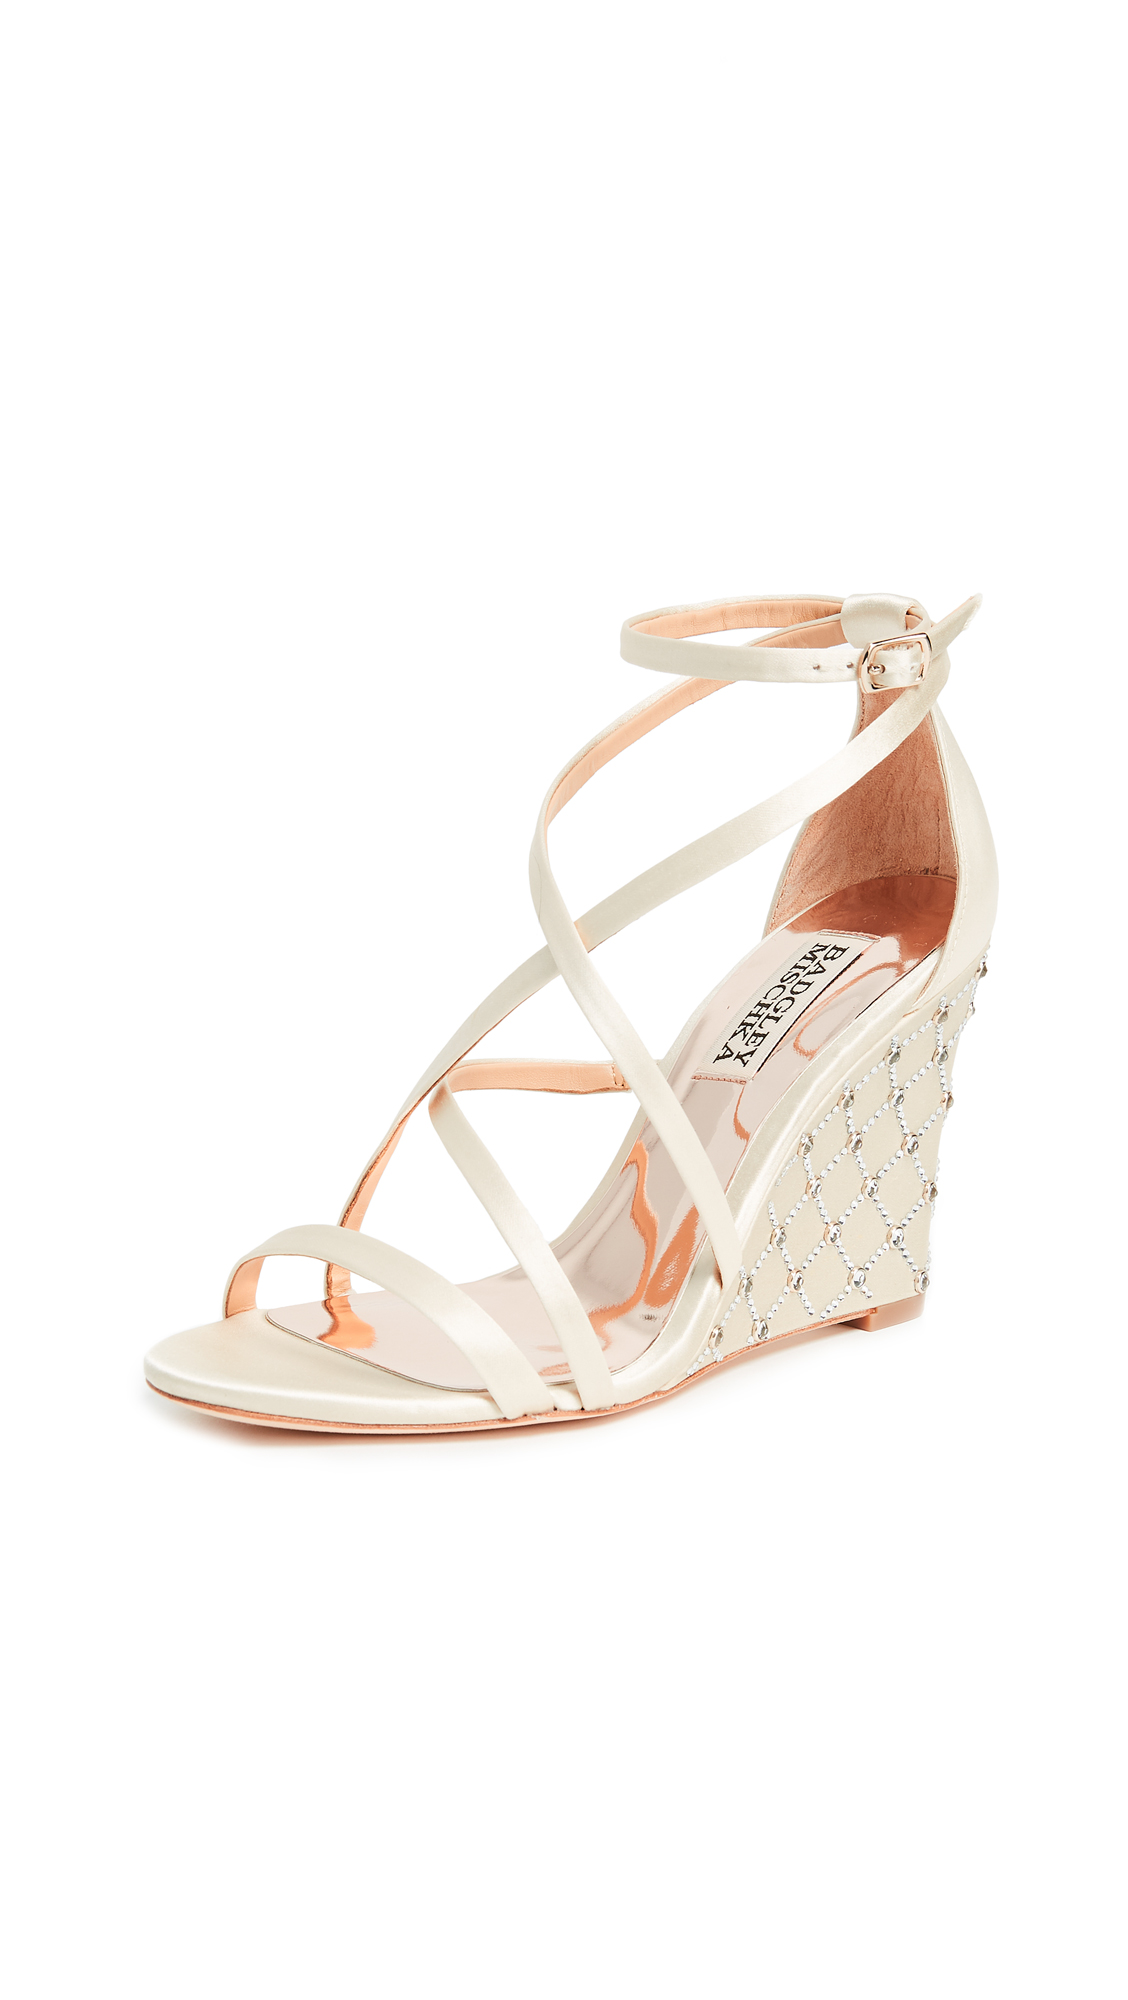 Badgley Mischka Shelly Wedge Sandals